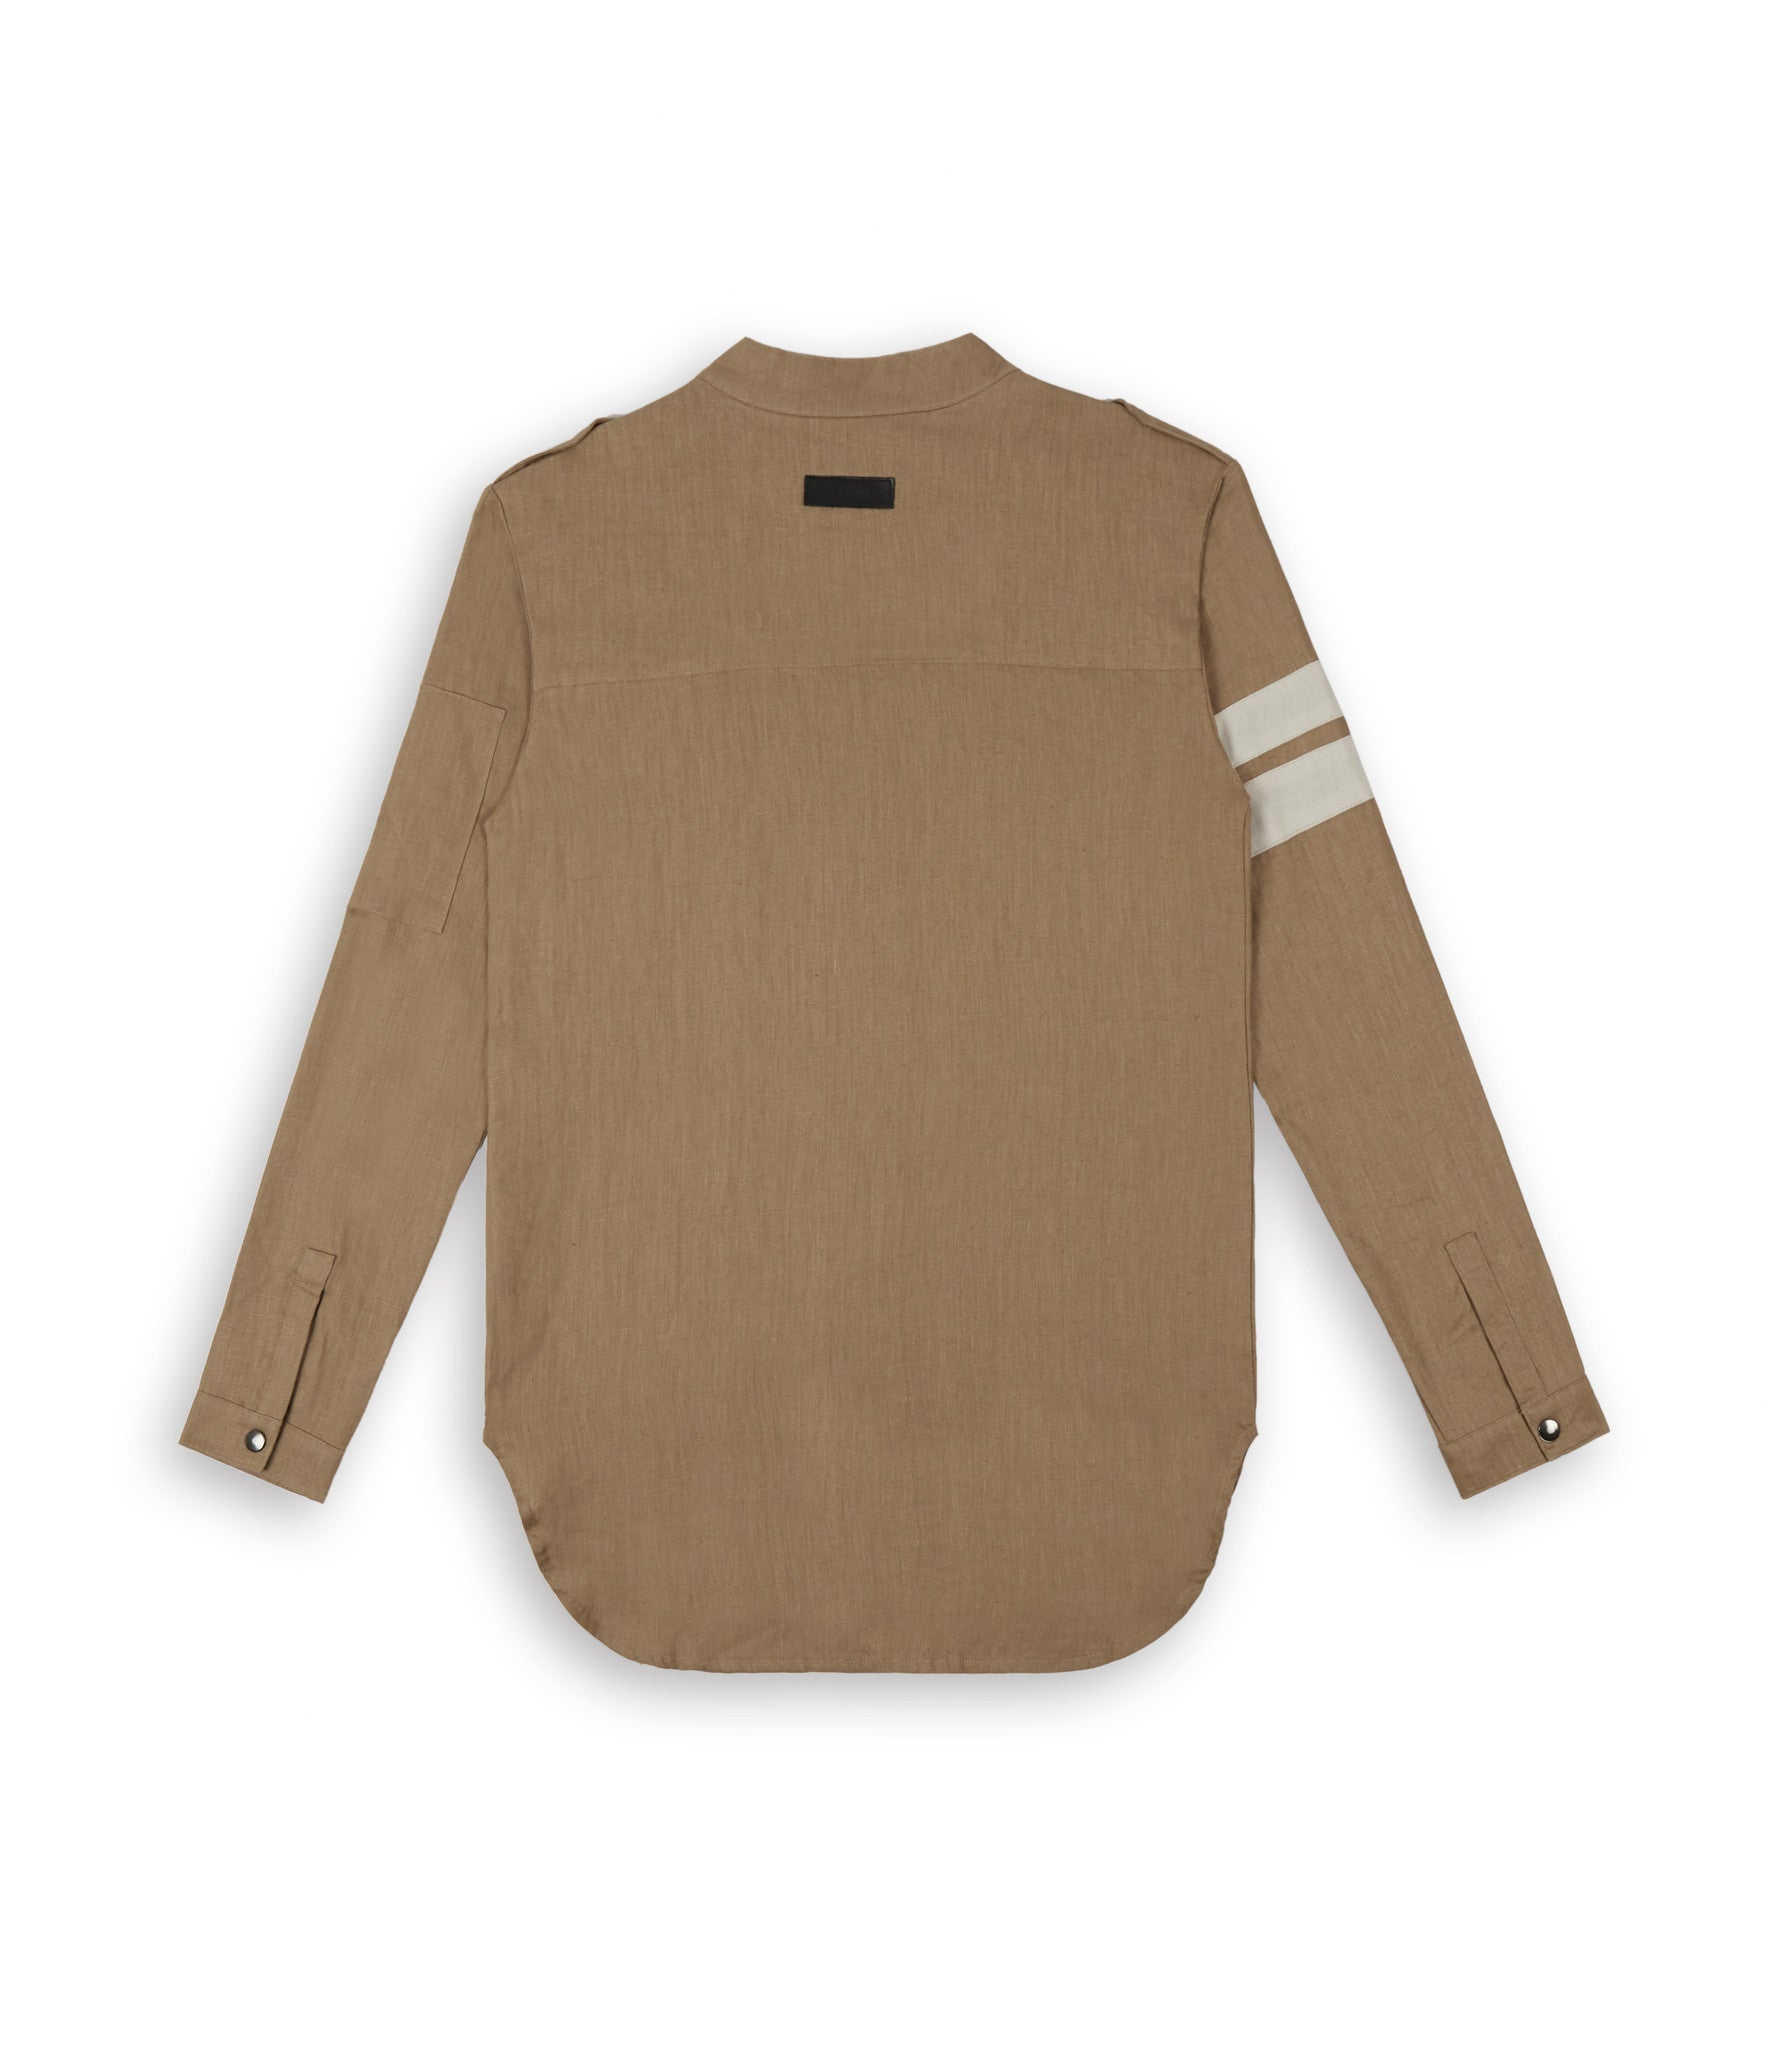 SH273 Exile Military Shirt - Tan - underated london - underatedco - 2